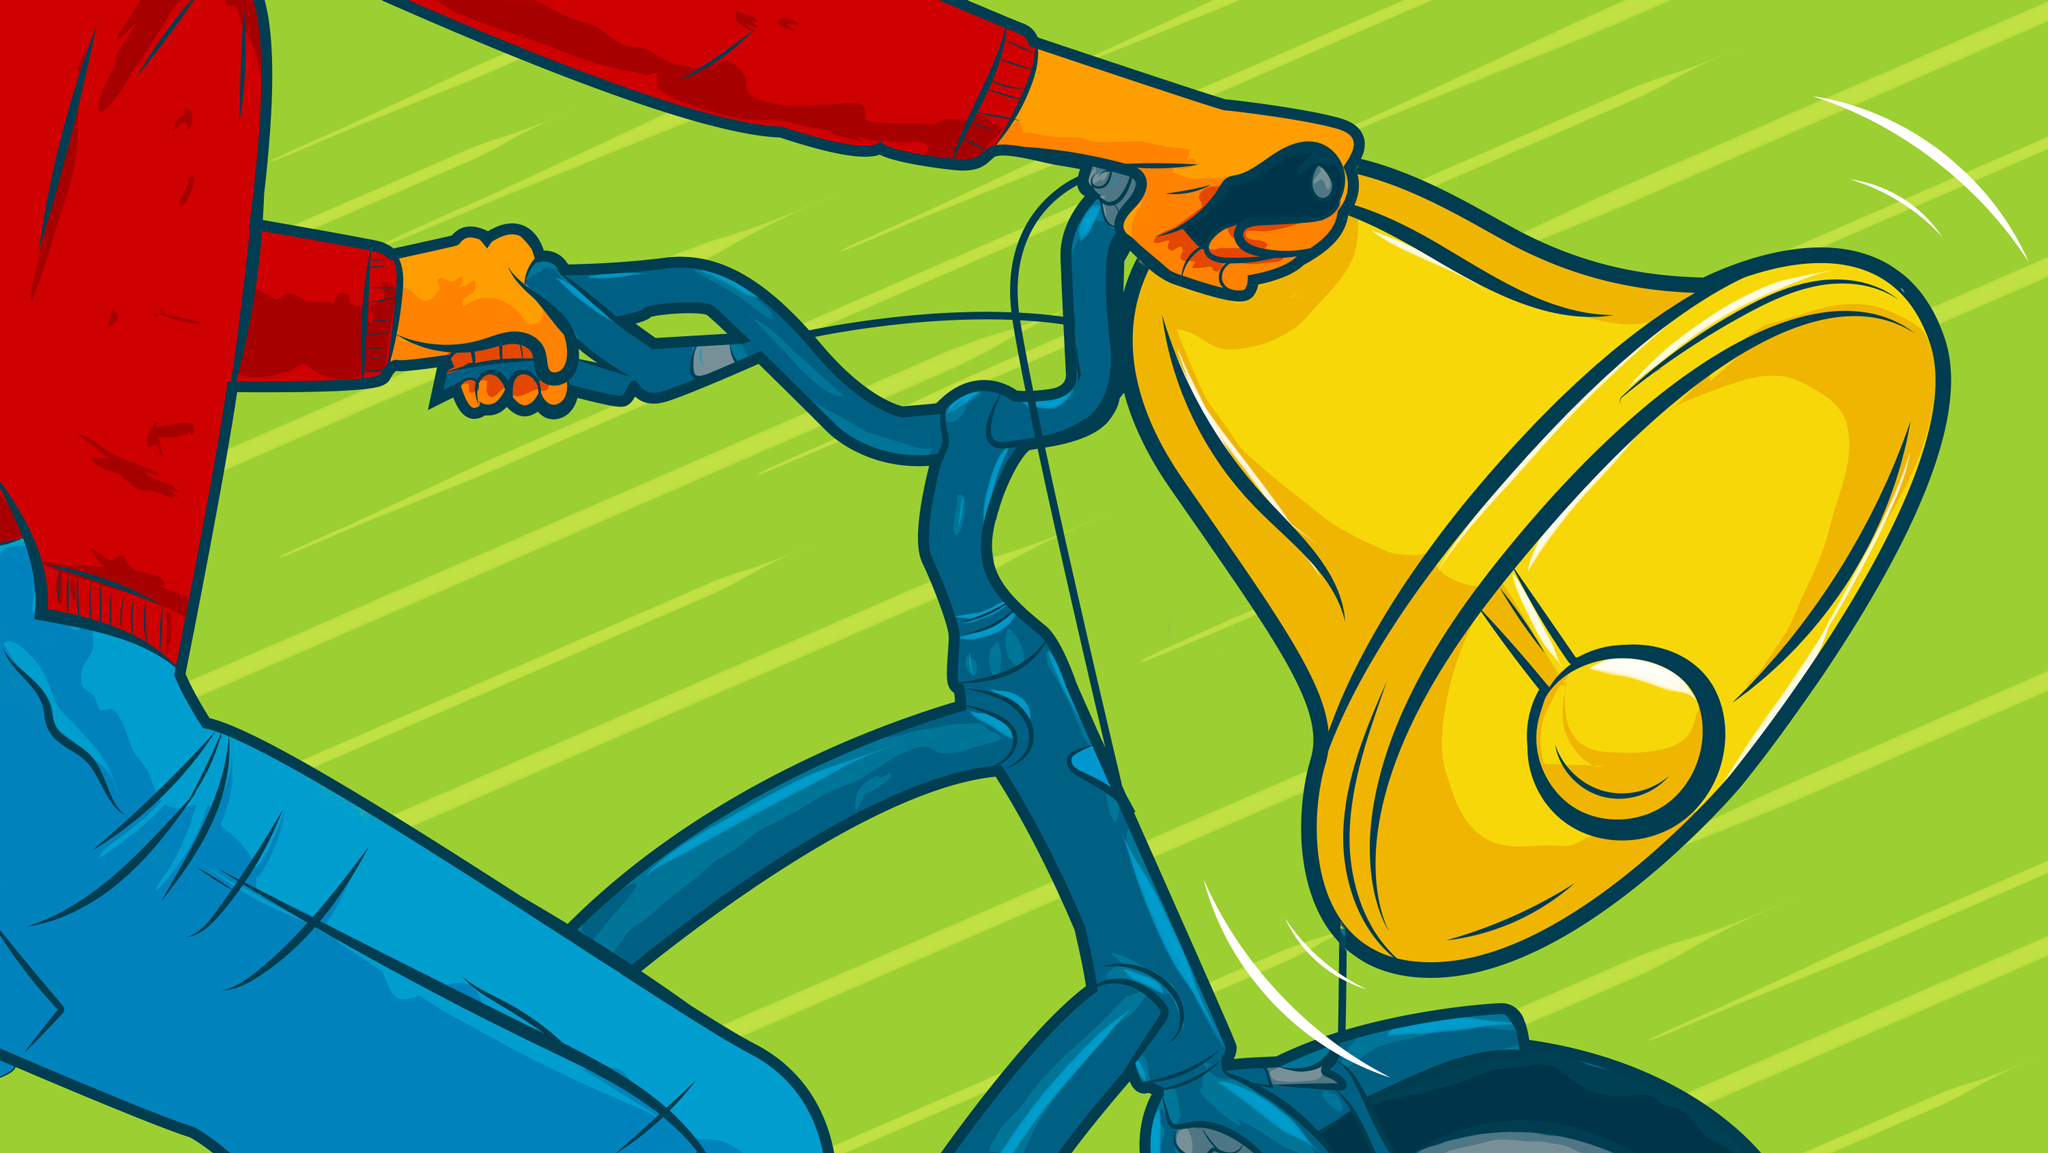 Why You Should Use The Bell On Your Bicycle